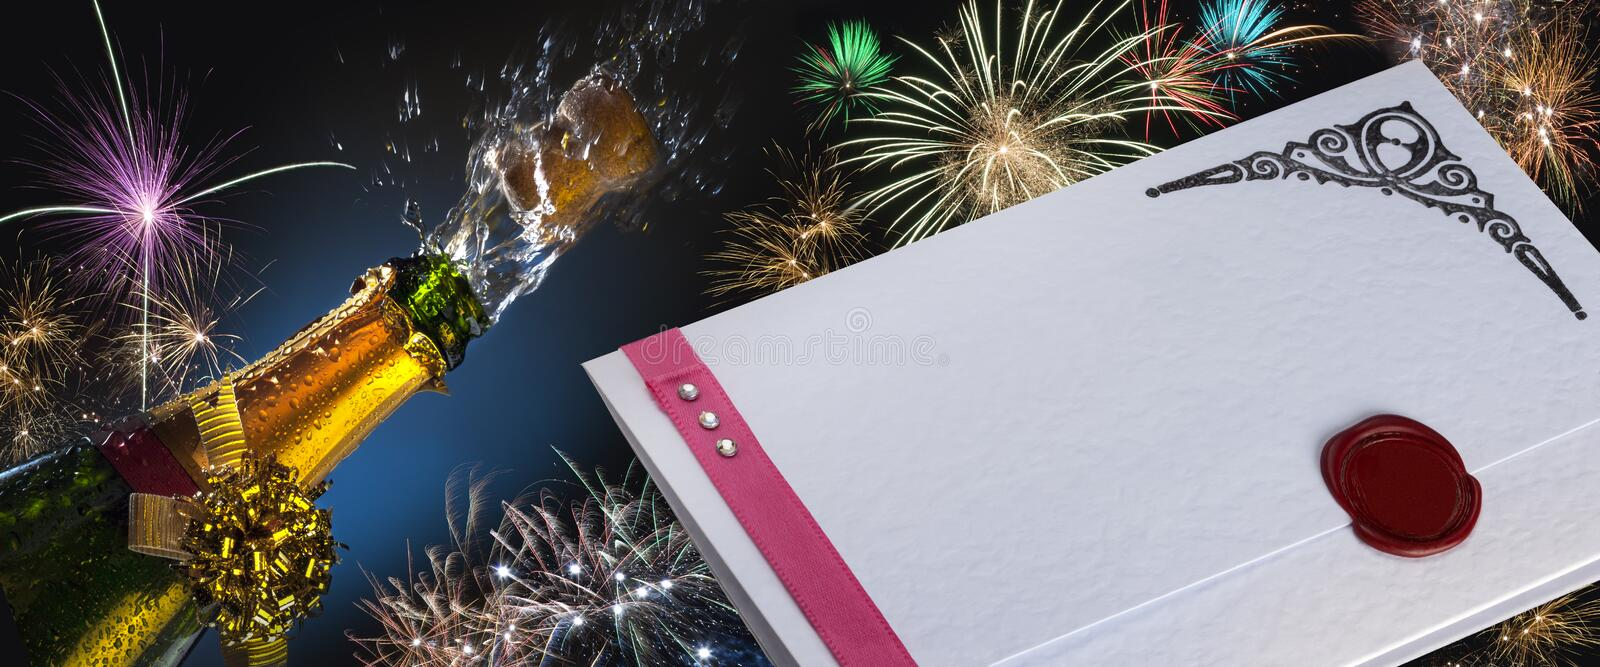 Invitation - Fizz and Fireworks royalty free stock image